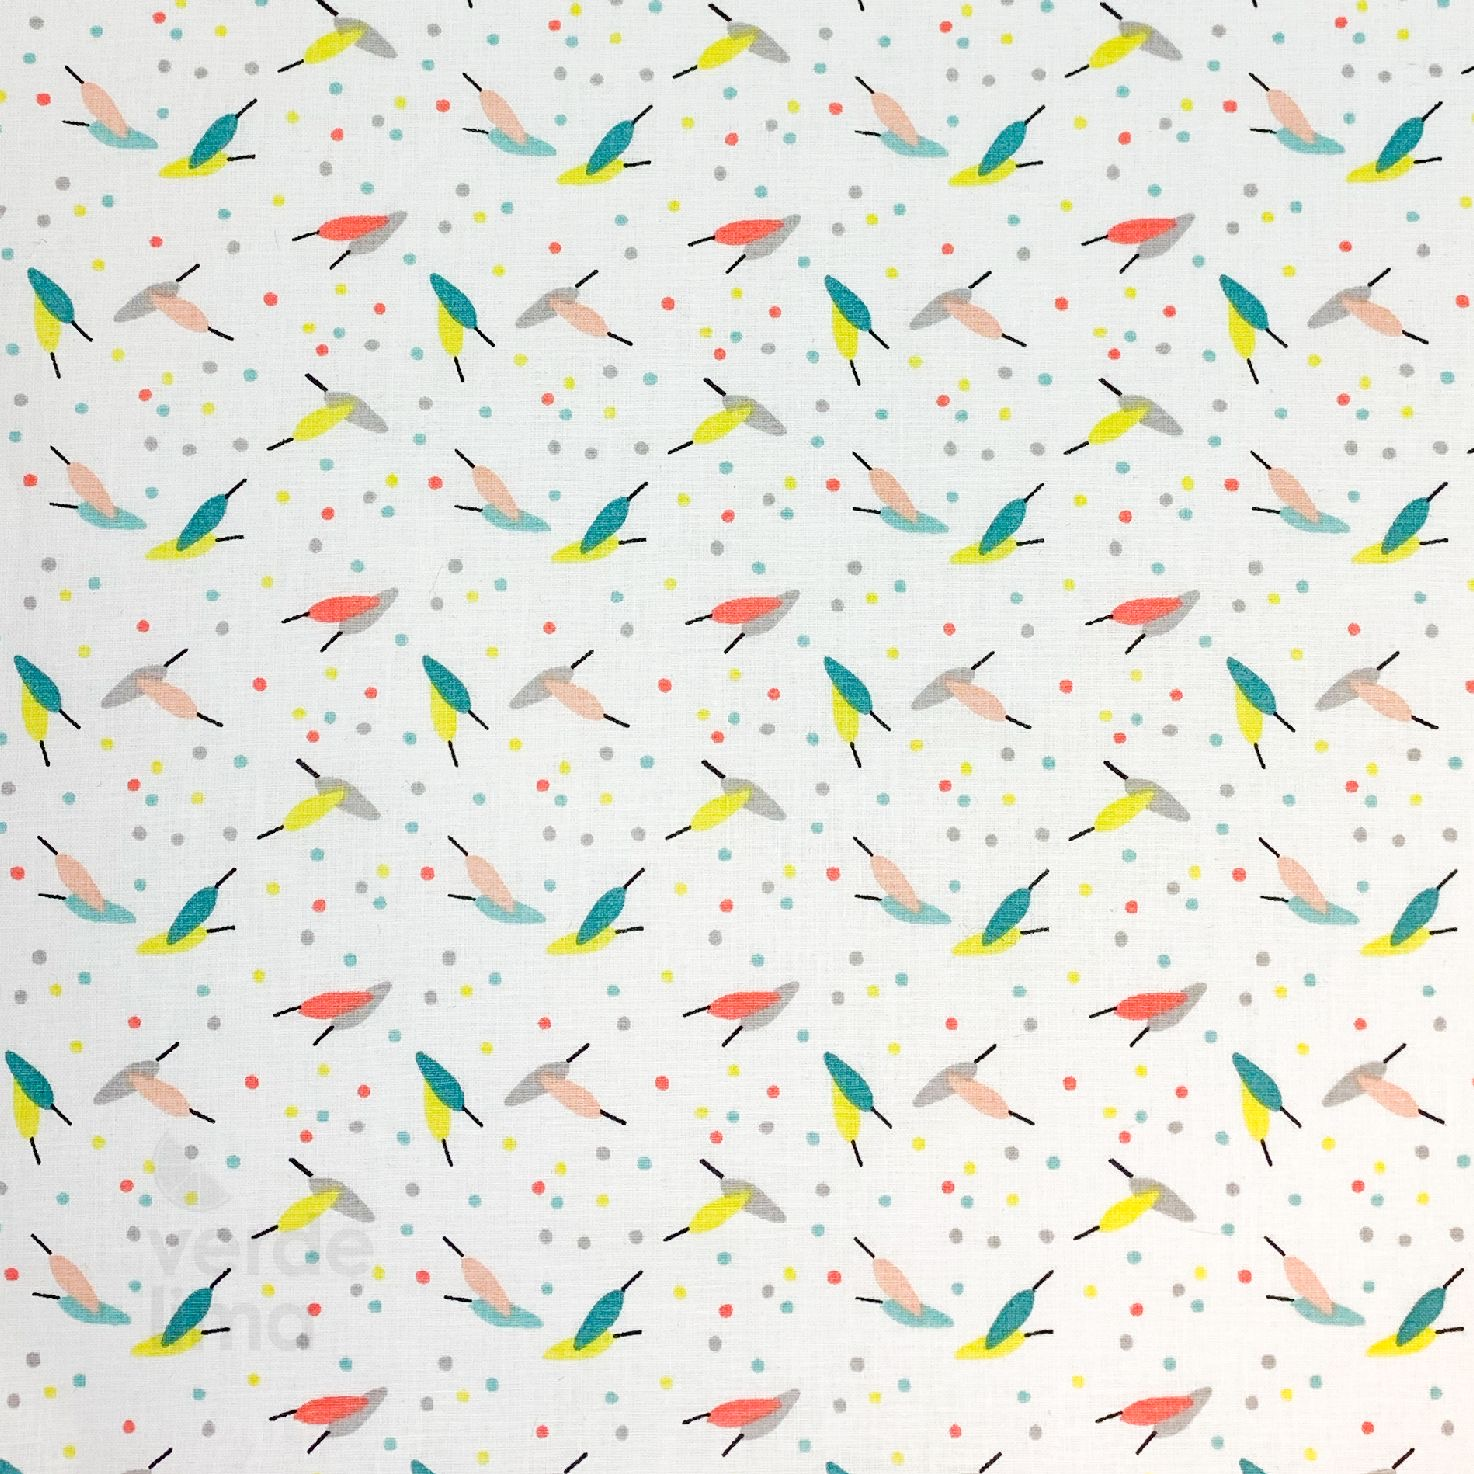 Origami - Feathers